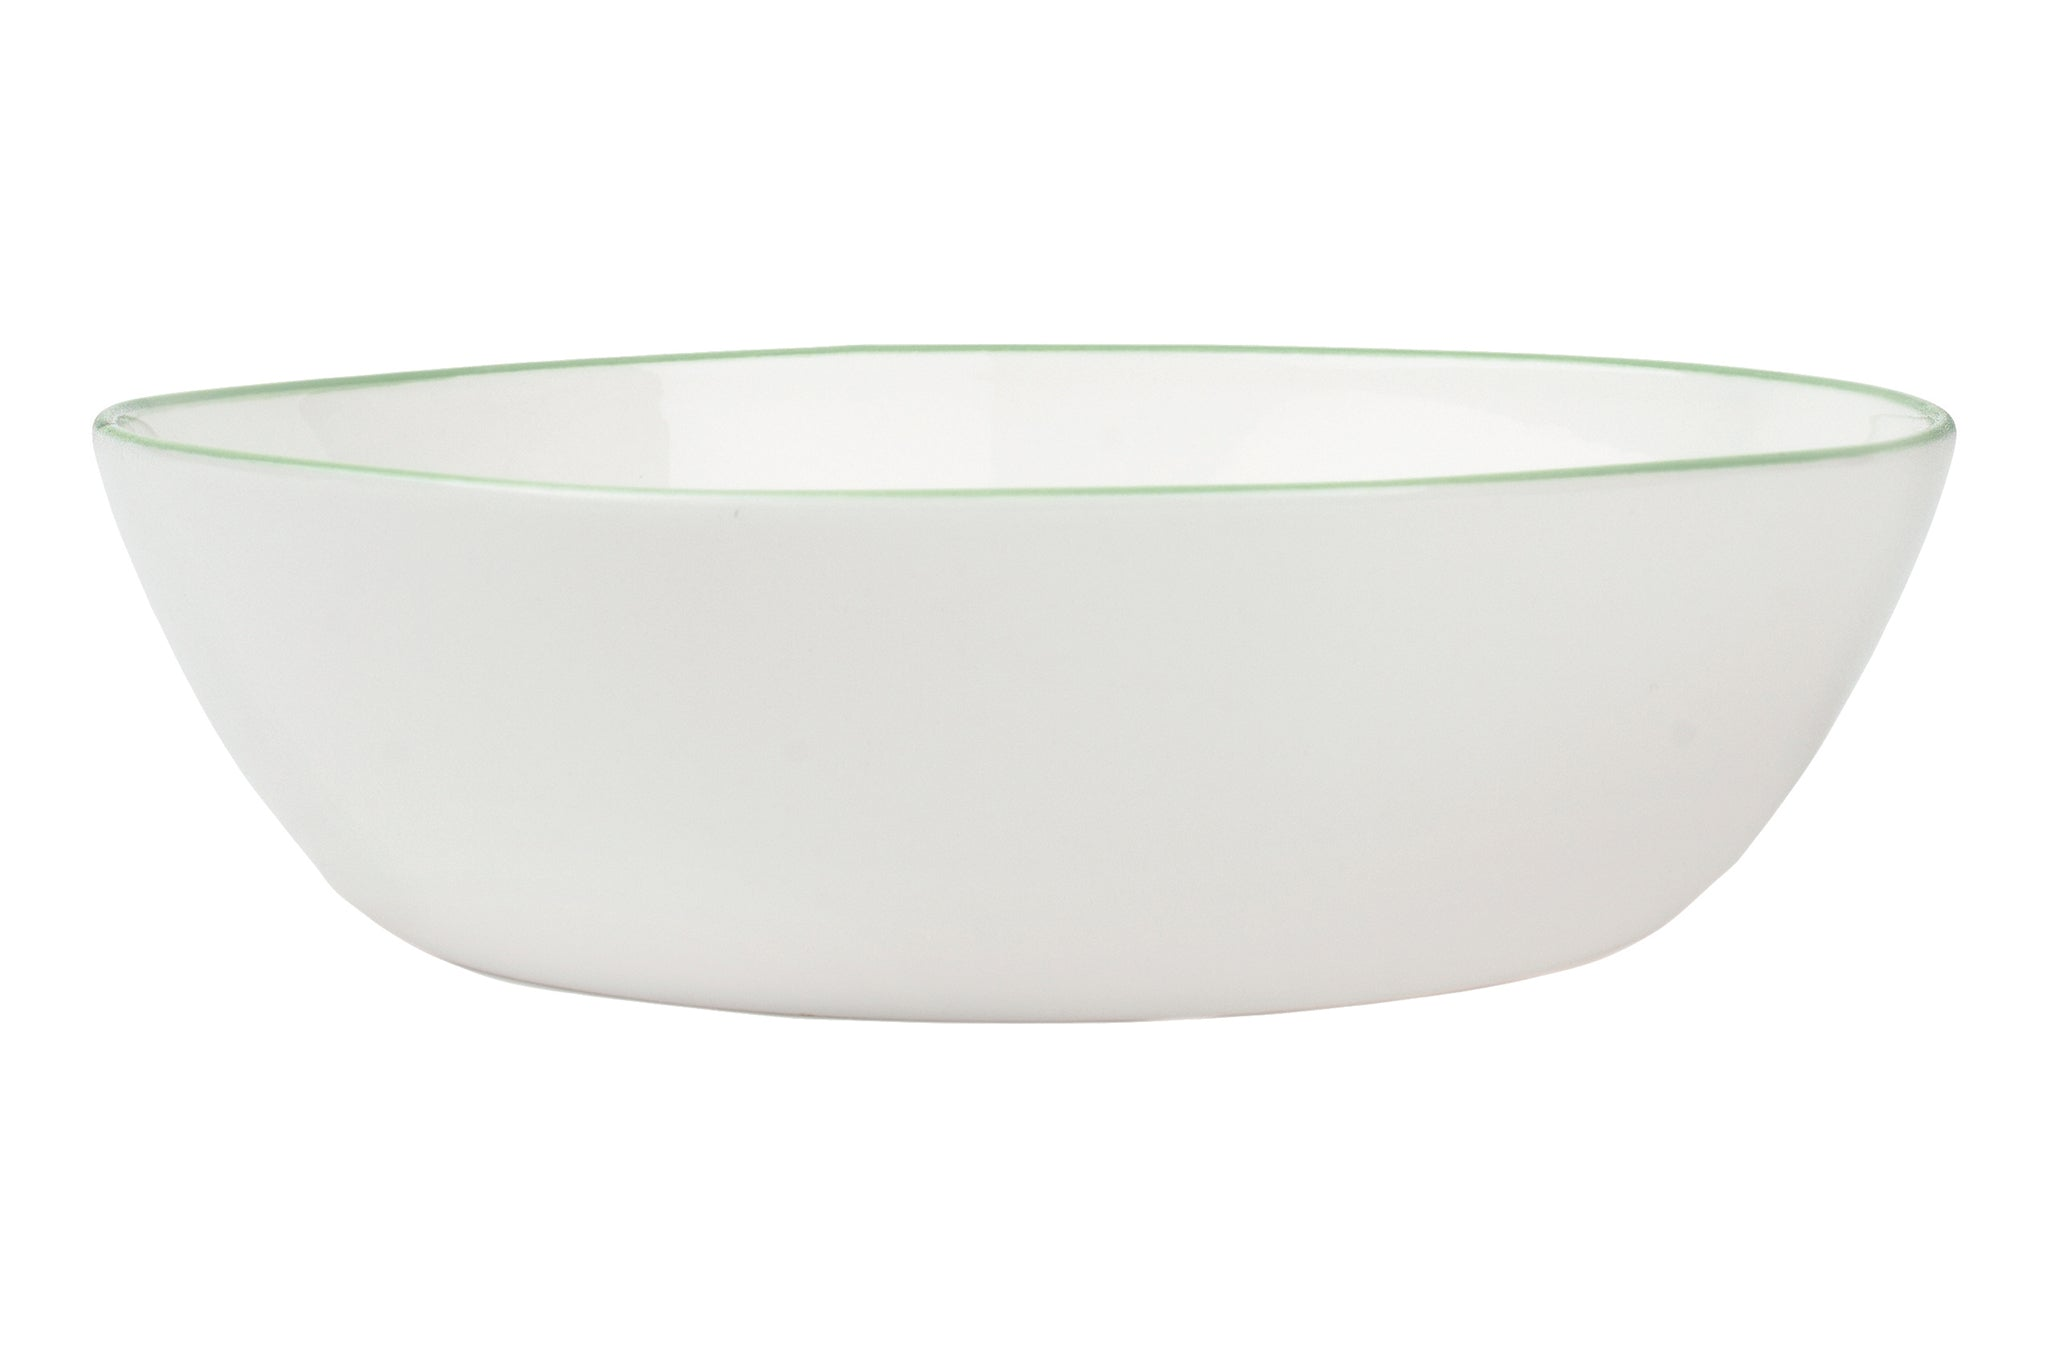 Abbesses Pasta Bowl Green Rim (Set of 4)